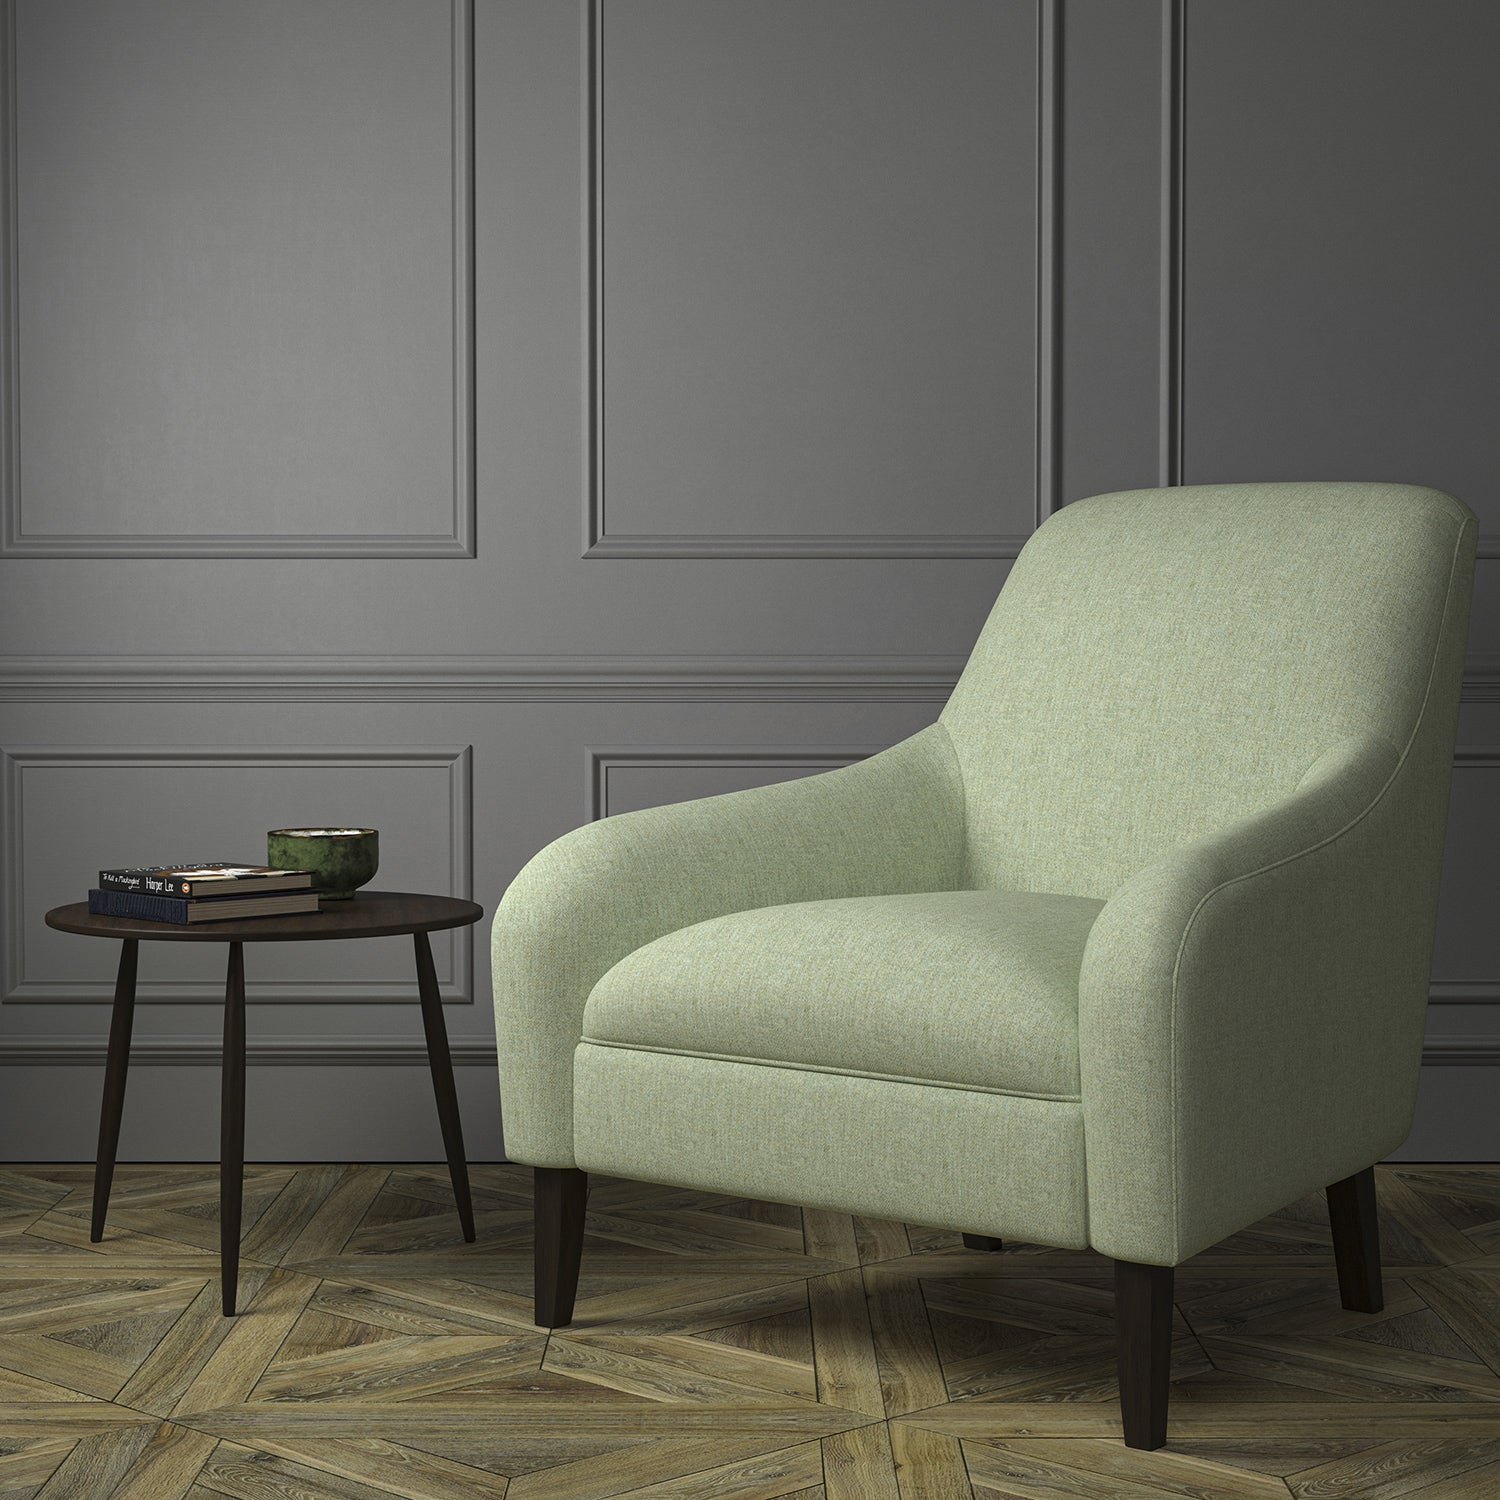 Chair upholstered in a light green Scottish wool herringbone fabric